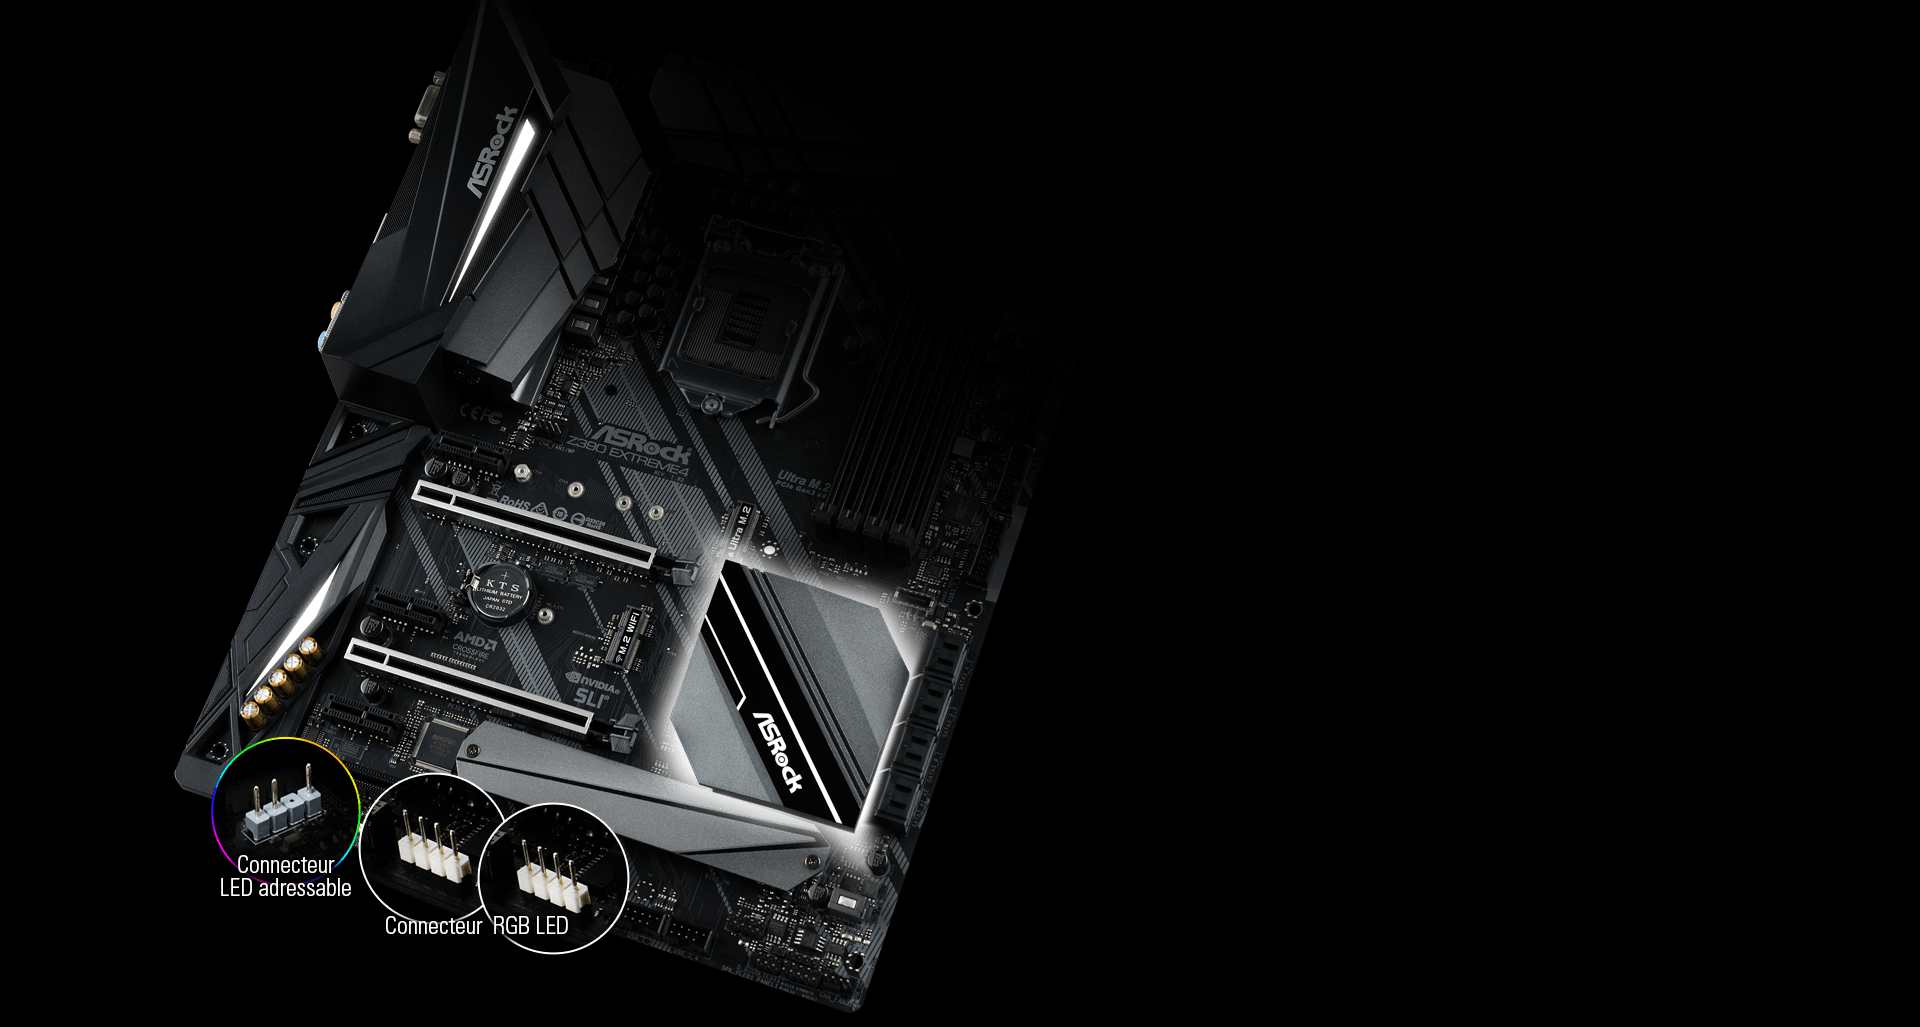 https://www.asrock.com/mb/features/POLYRGBLED-Z390%20Extreme4.fr.png